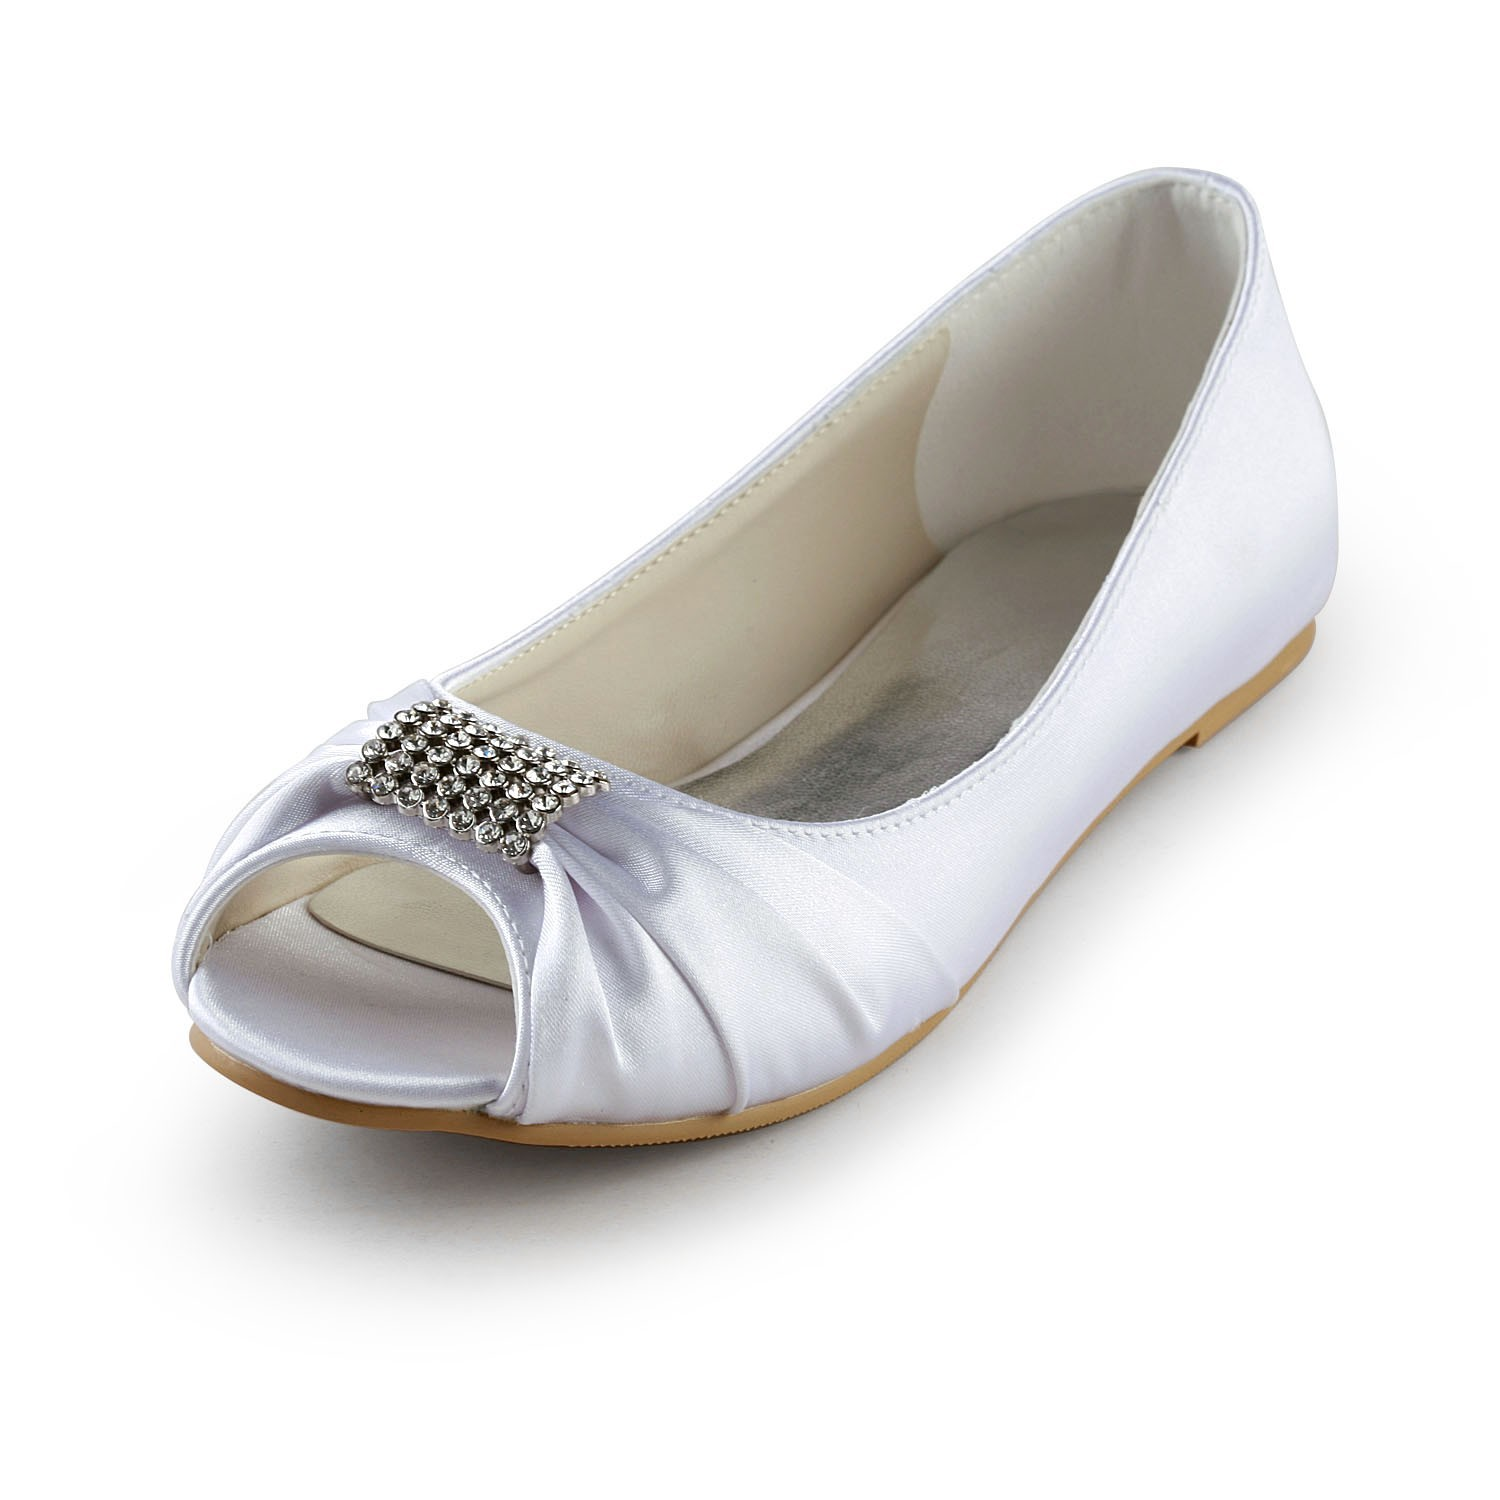 54aaee2c189222 Sandals Wedding Shoes S23683